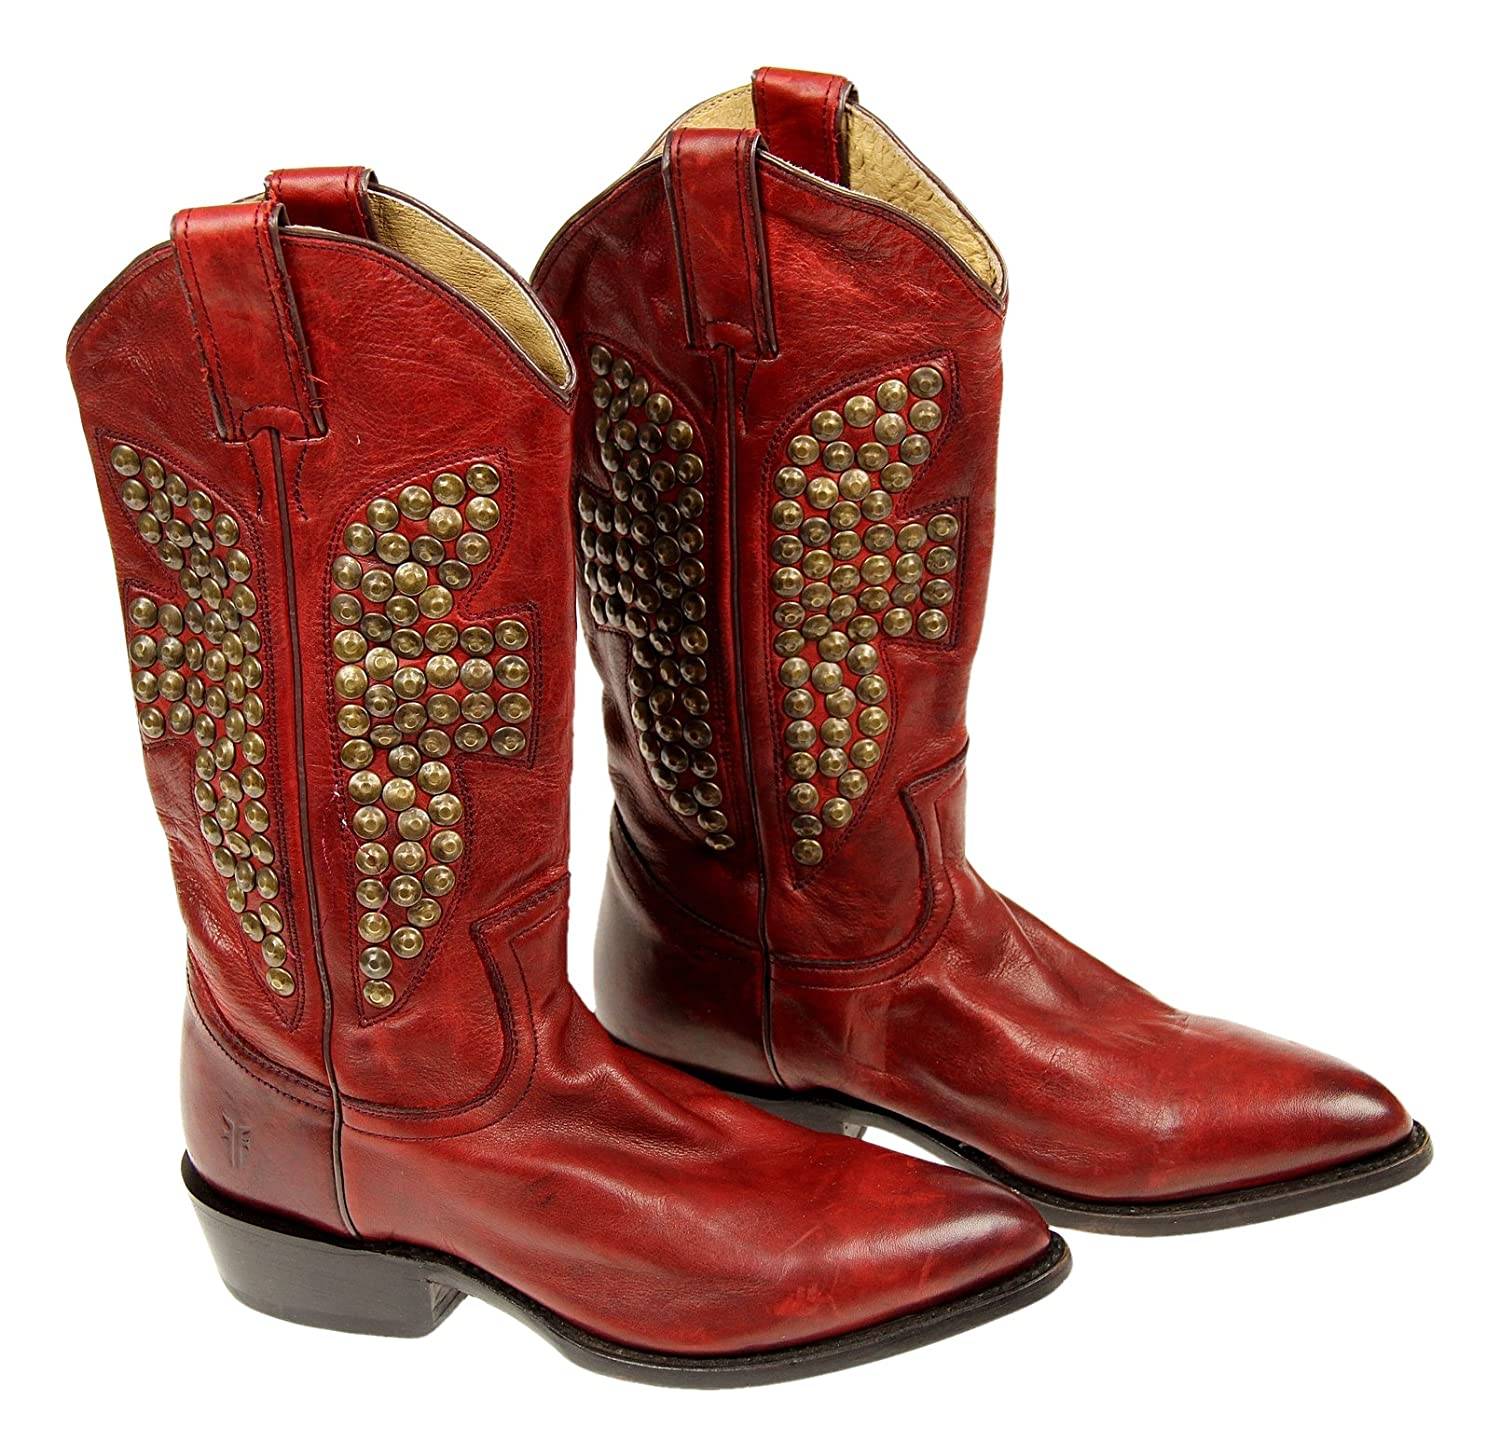 Frye Women's Billy Hammered-Stud Boot Red Size 6 M New